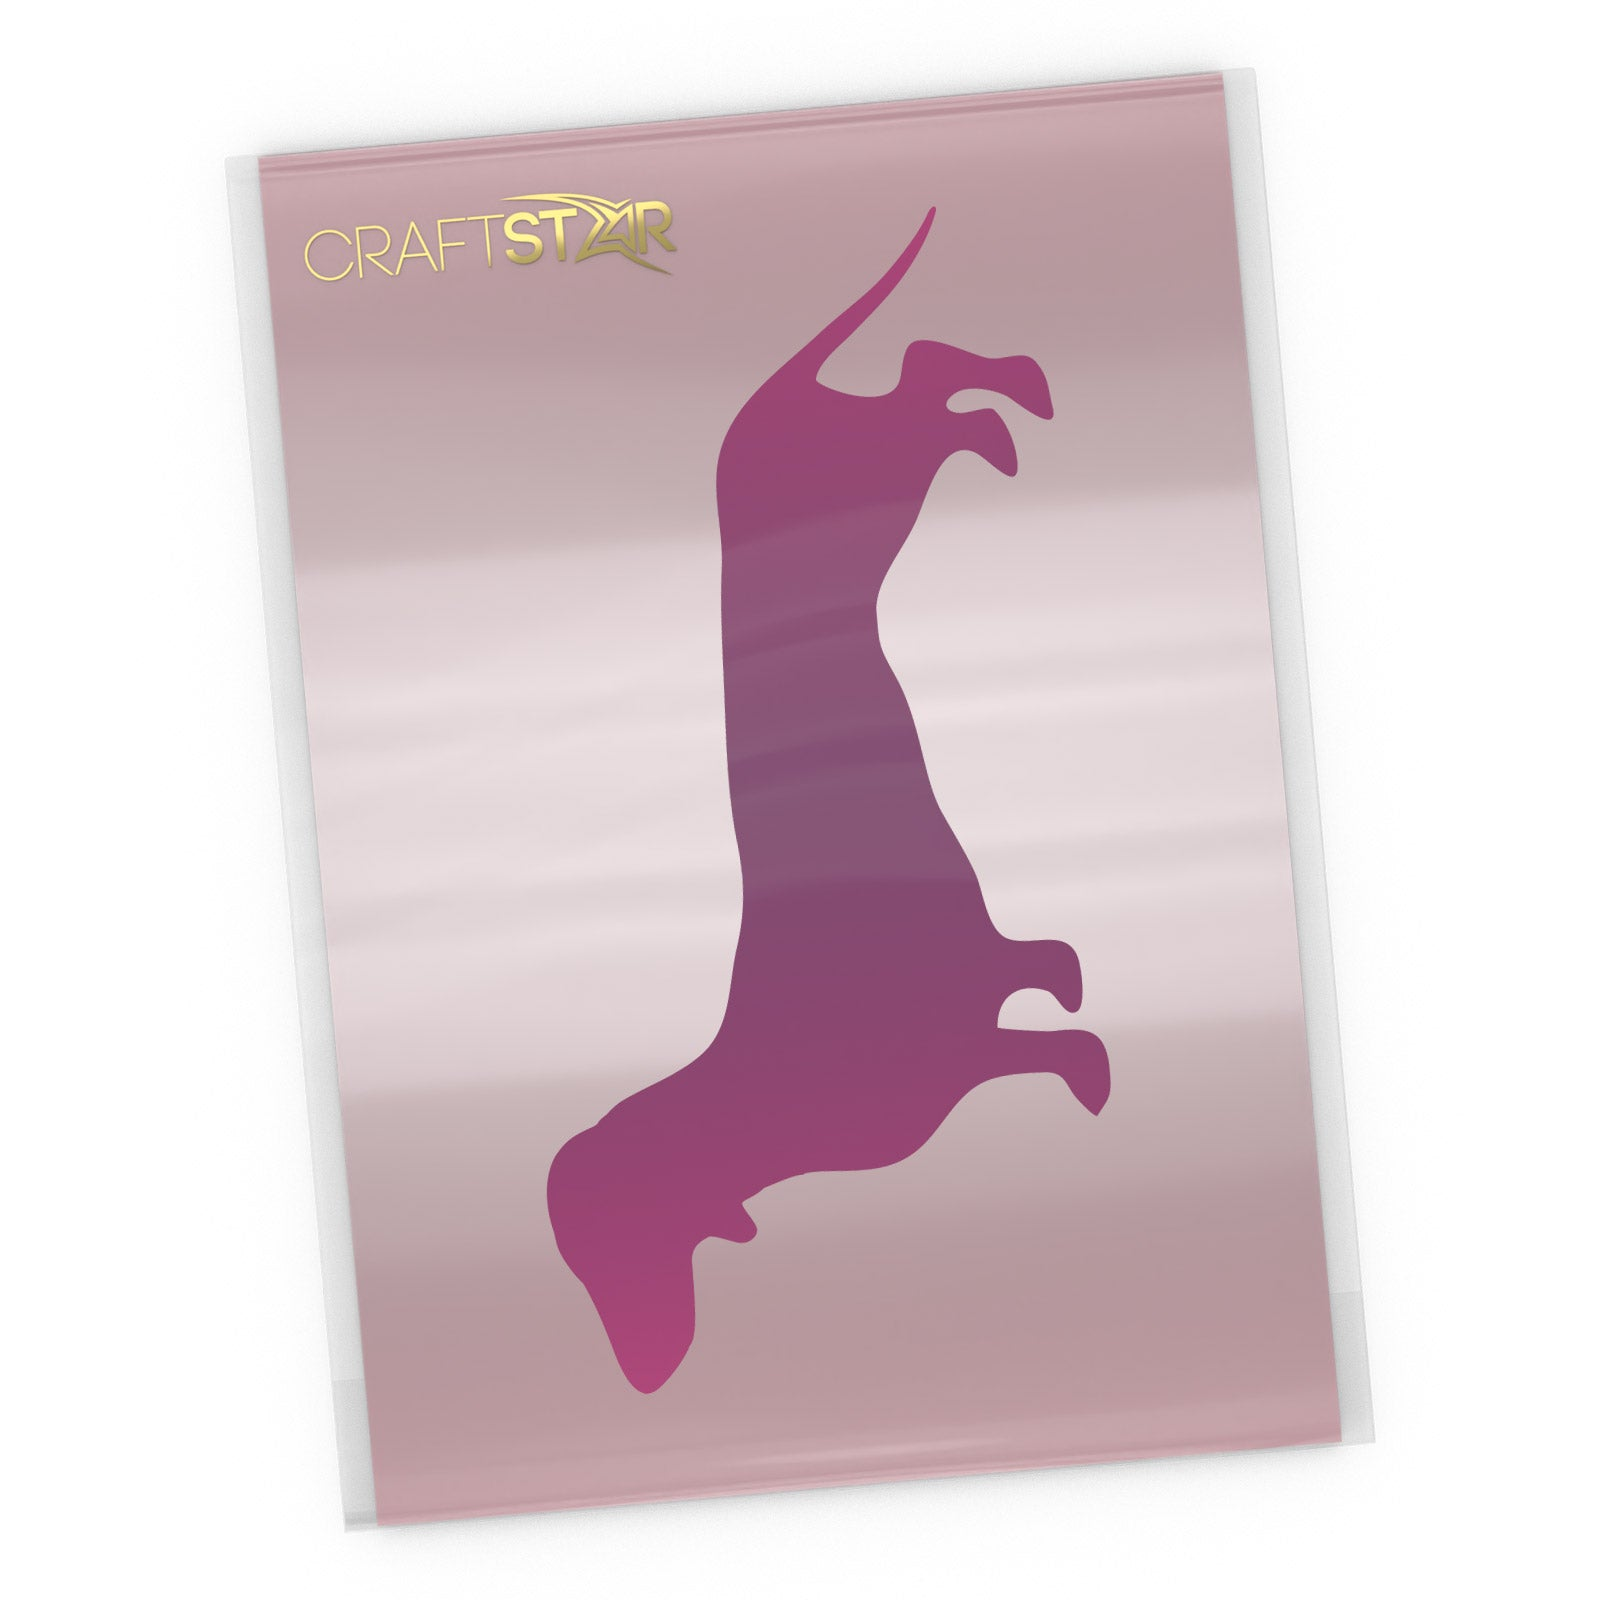 Dachshund Dog Stencil - A4 Craft Template